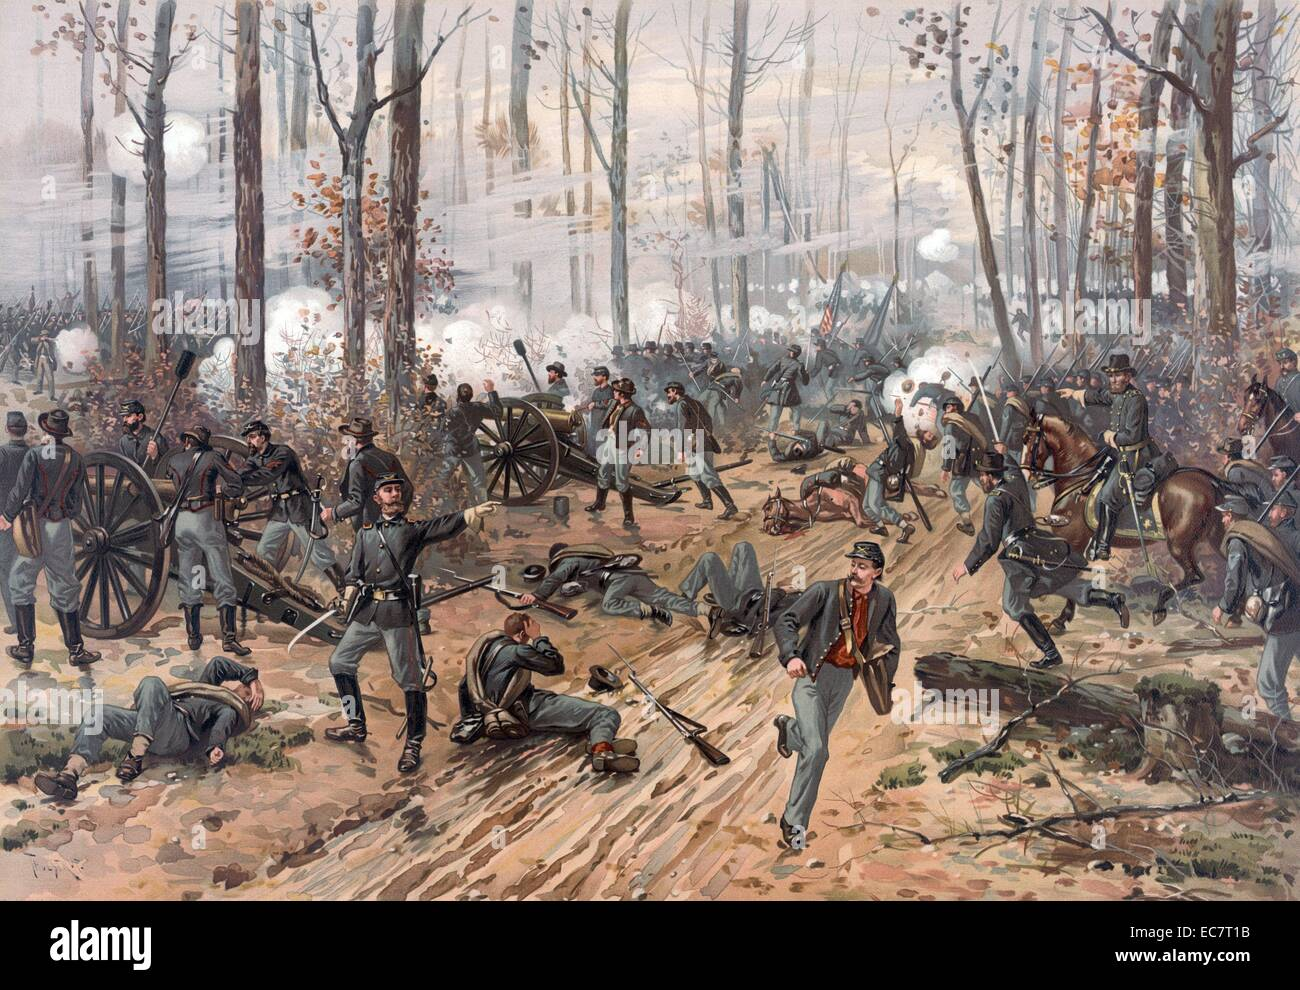 Battle of Shiloh, known as the Battle of Pittsburgh Landing. A battle between the United States Union and the Confederate - Stock Image